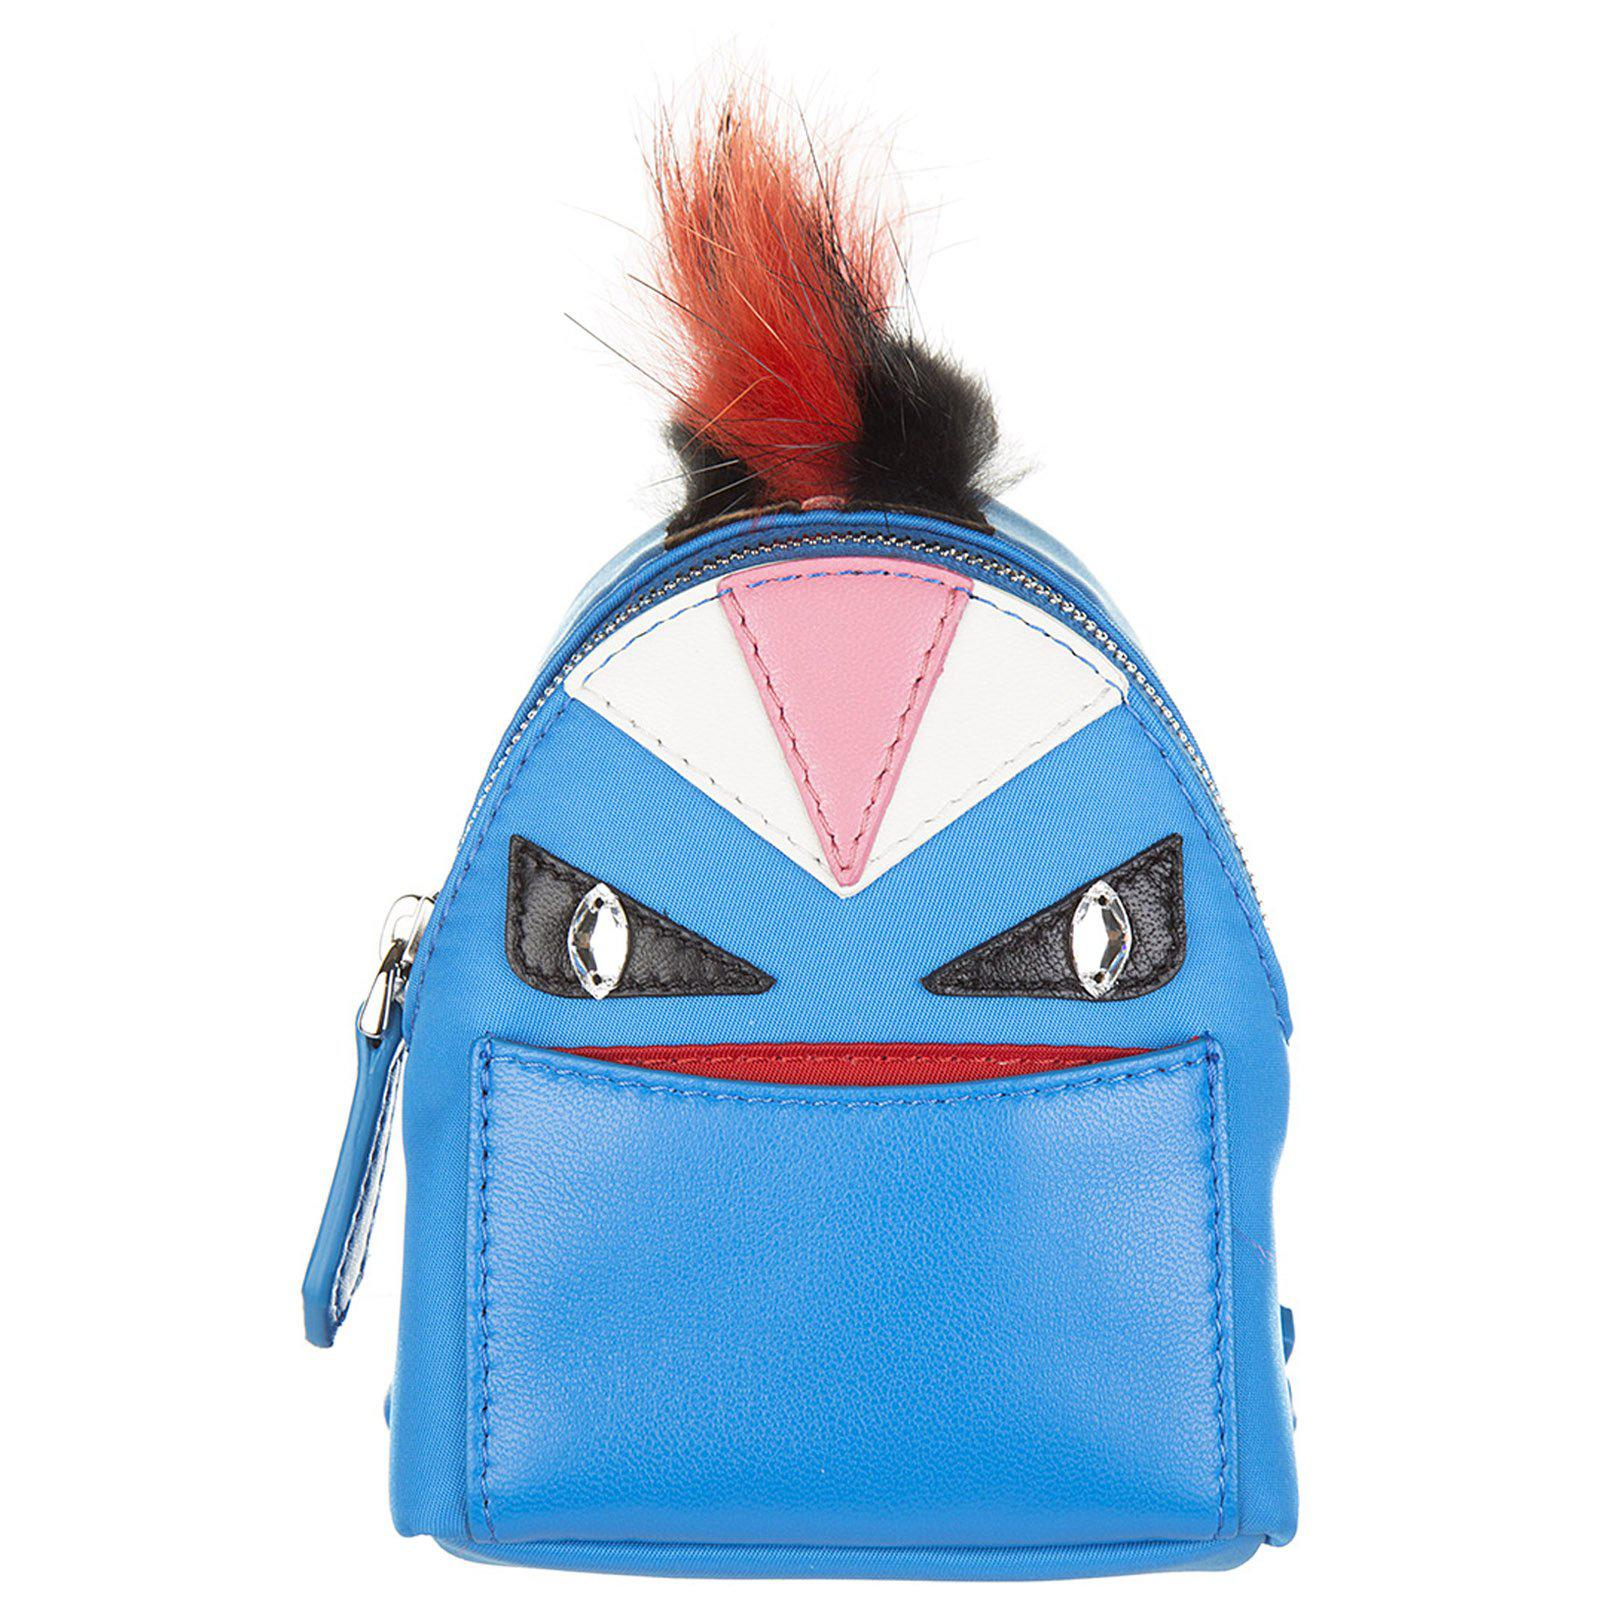 a0aa93f2bcba Fendi Bag Bugs Backpack Charm in Blue - Lyst